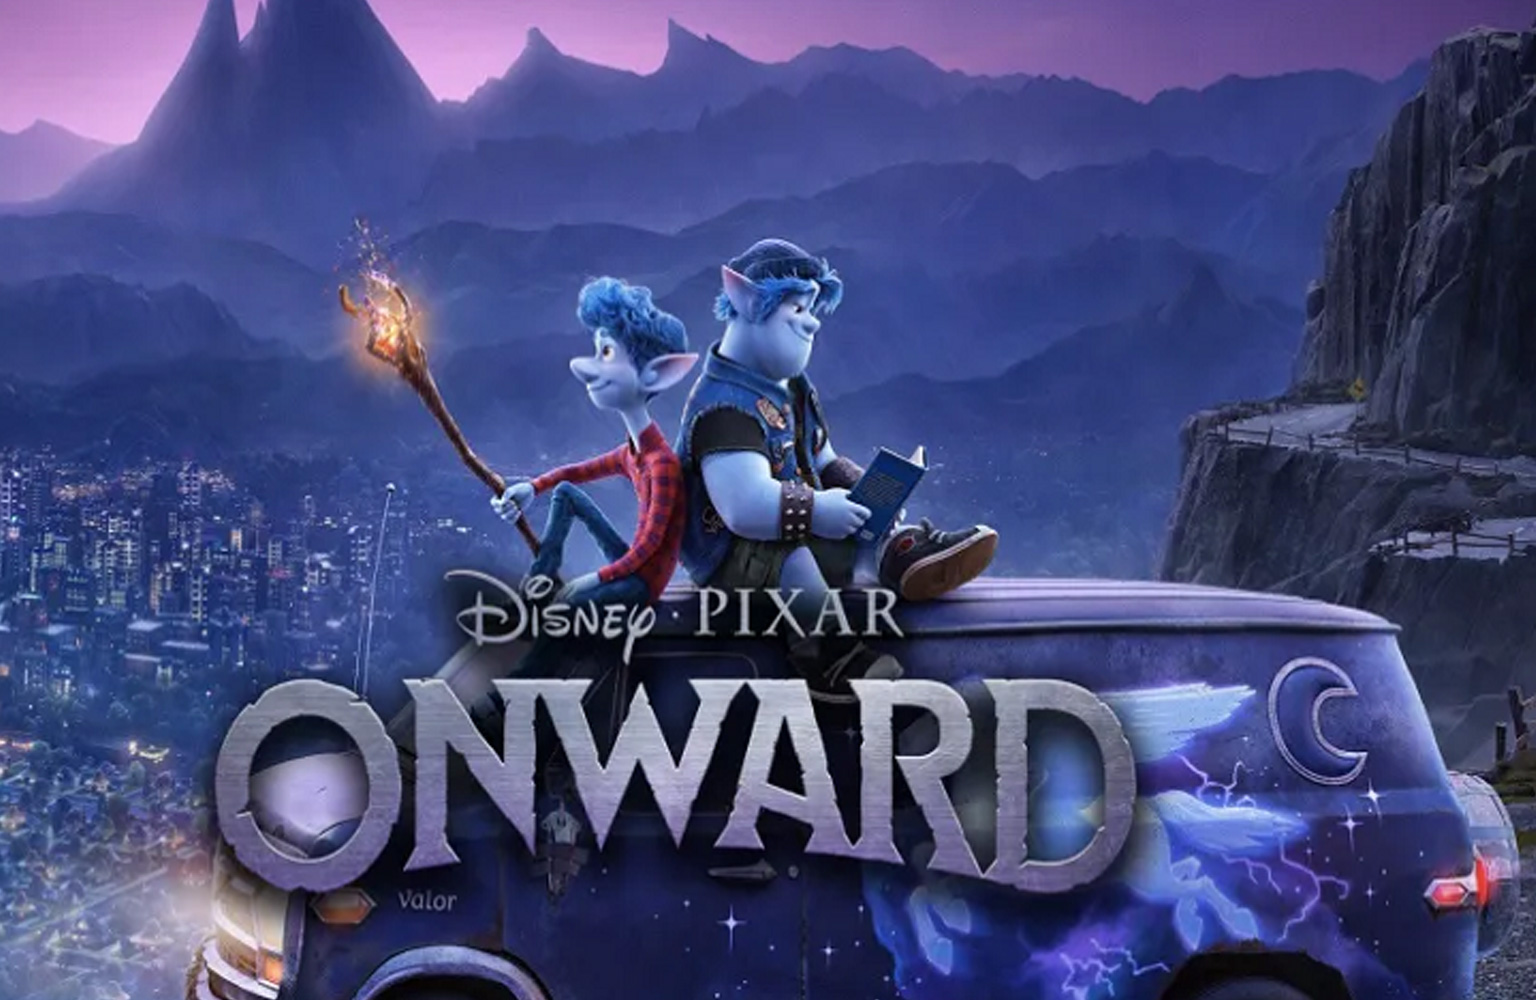 Disney's Pixar Marathon with Advance Screen of Onward